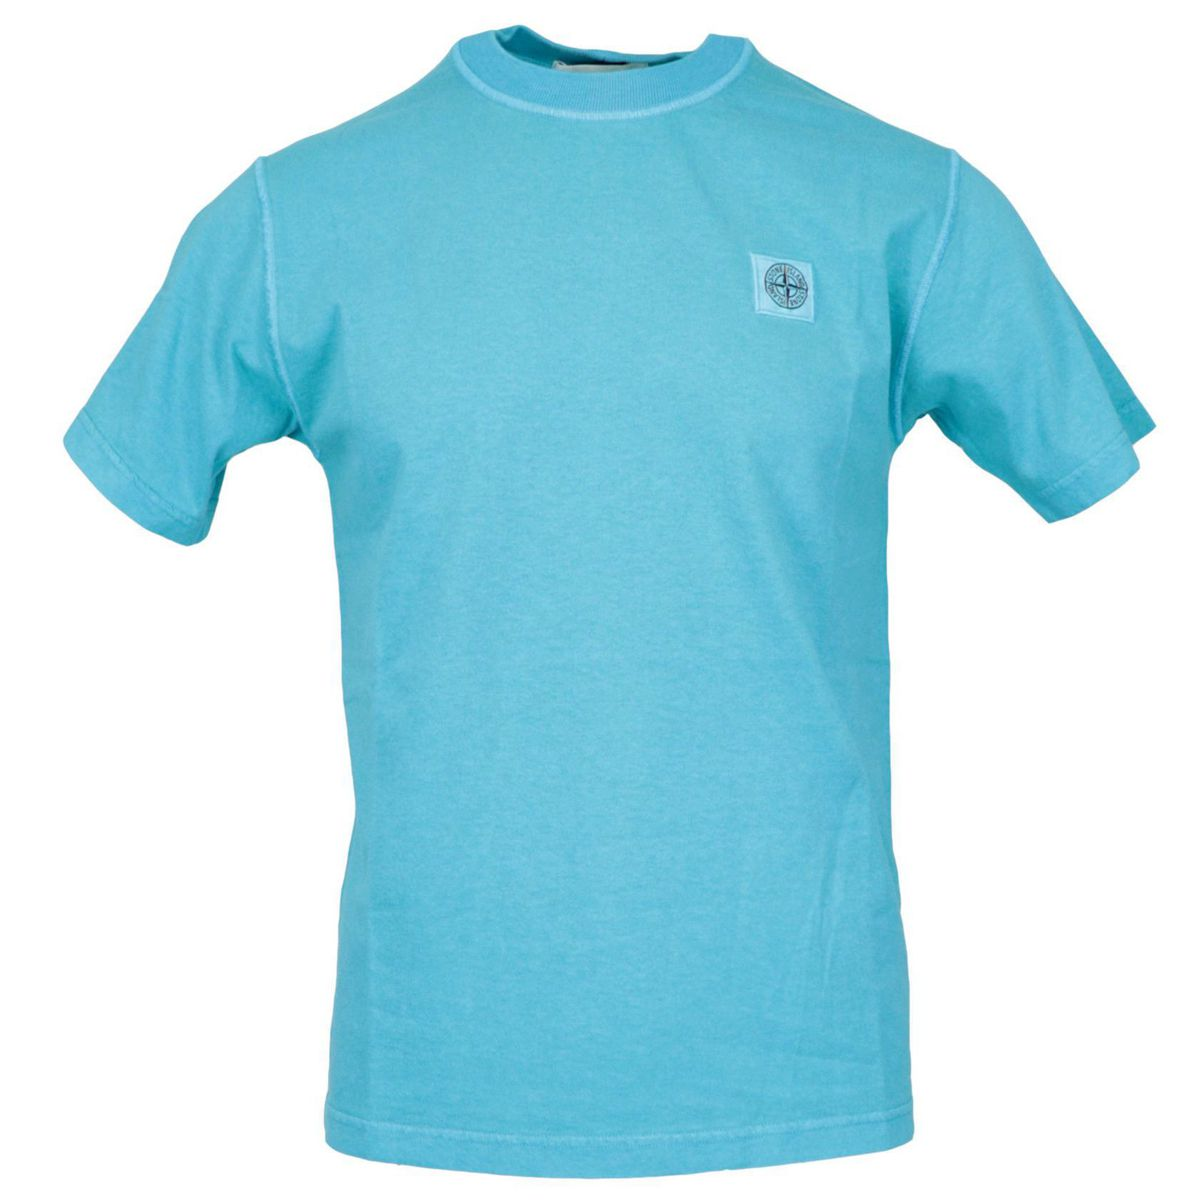 Cotton t-shirt with logo patch on the chest Turquoise Stone Island